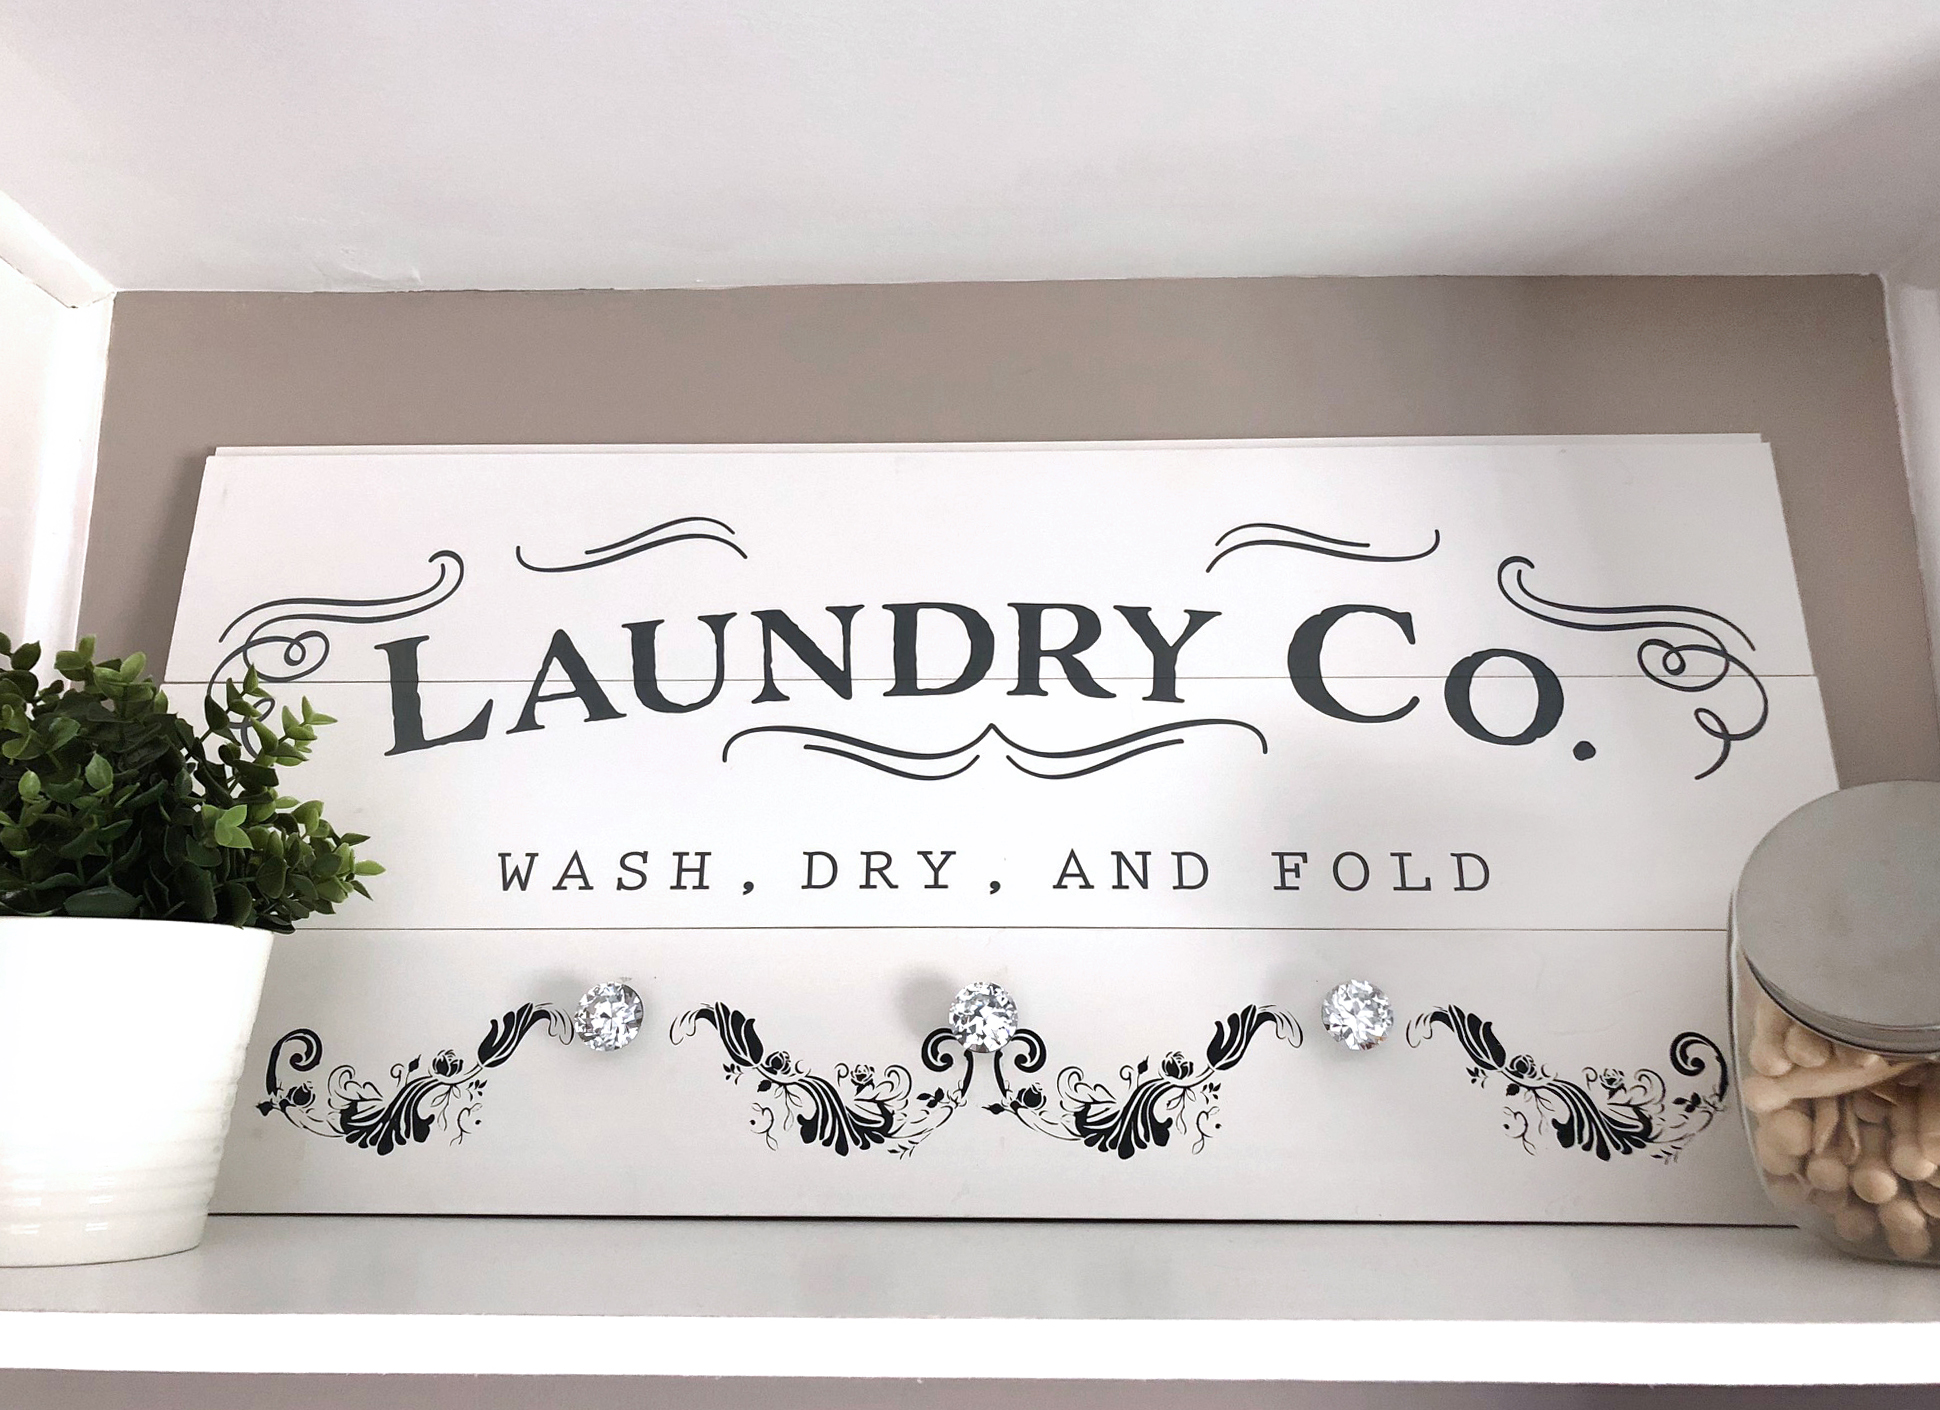 laundry-rsign-fin.jpg